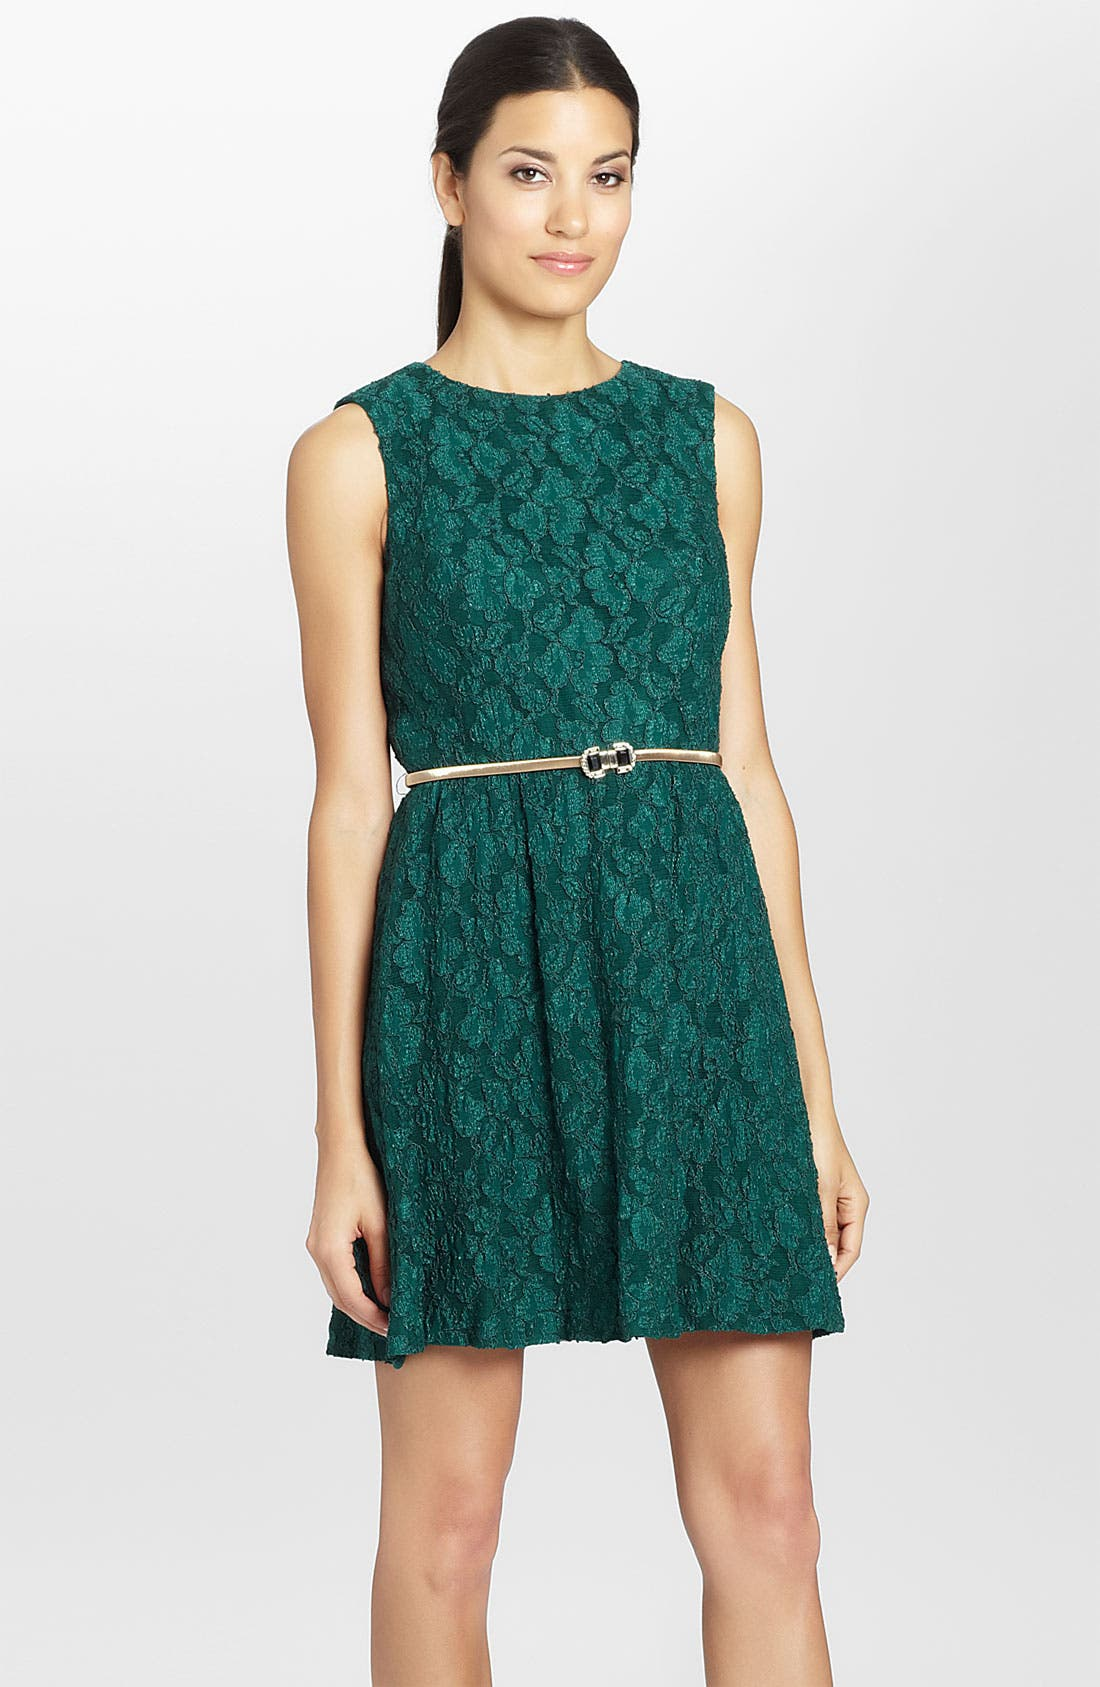 Alternate Image 1 Selected - Cynthia Steffe 'Davine' Sleeveless Belted Lace Dress